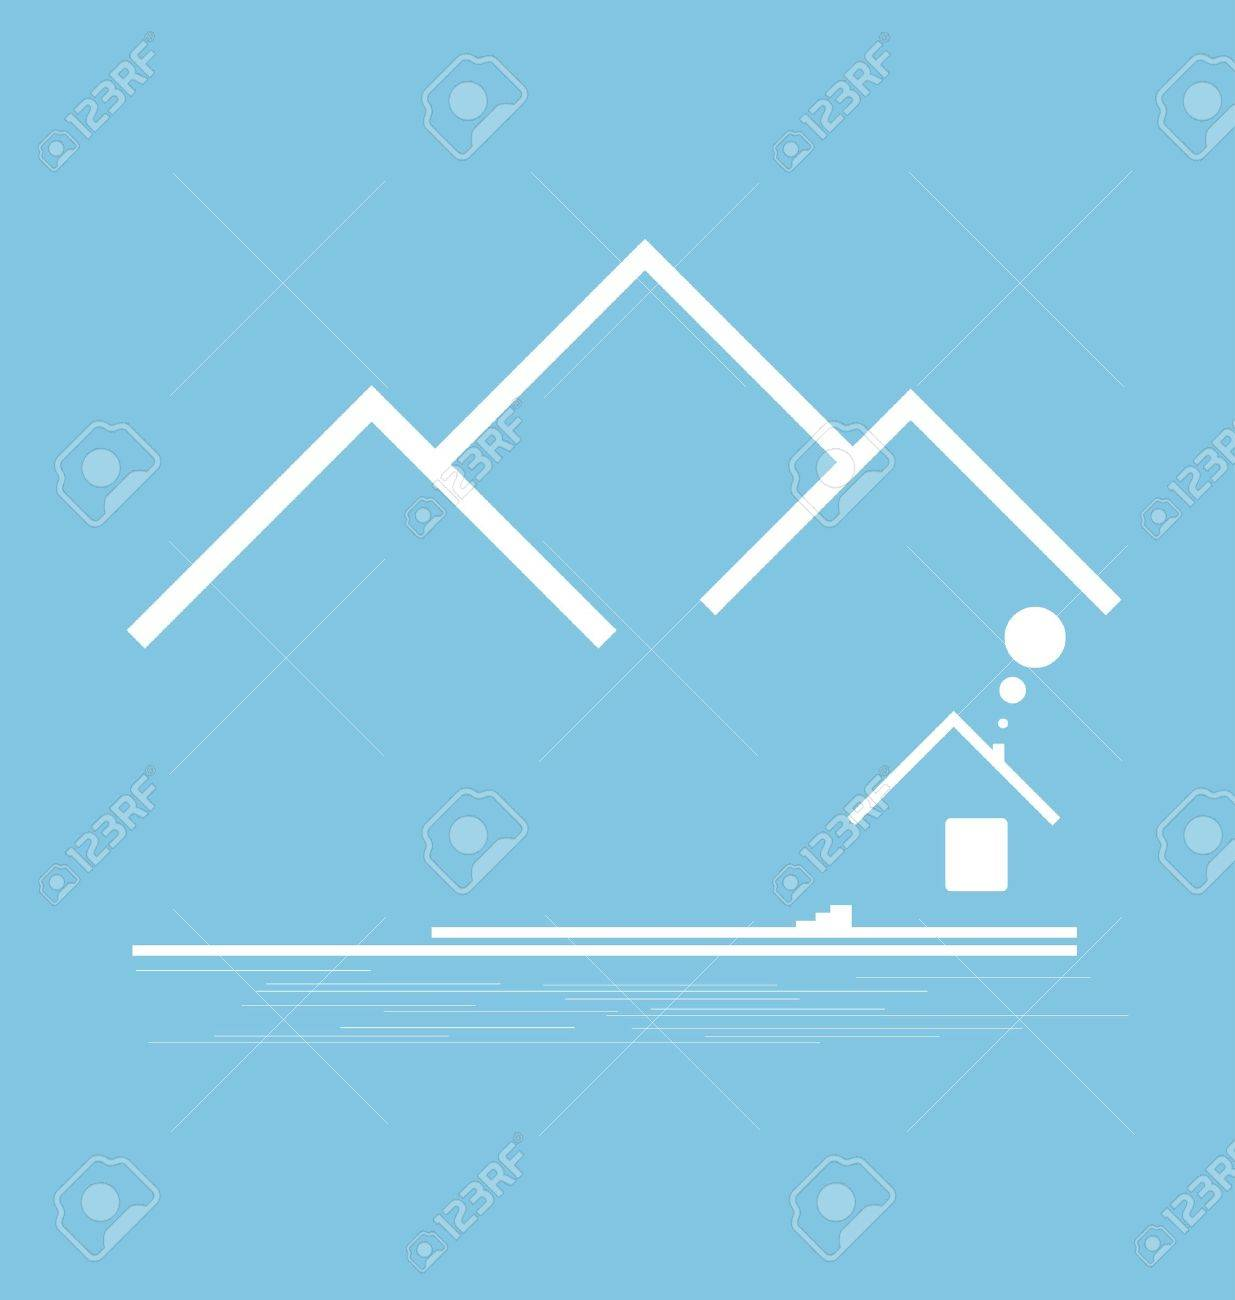 Mountain stylized with building vector format Stock Vector - 12166246